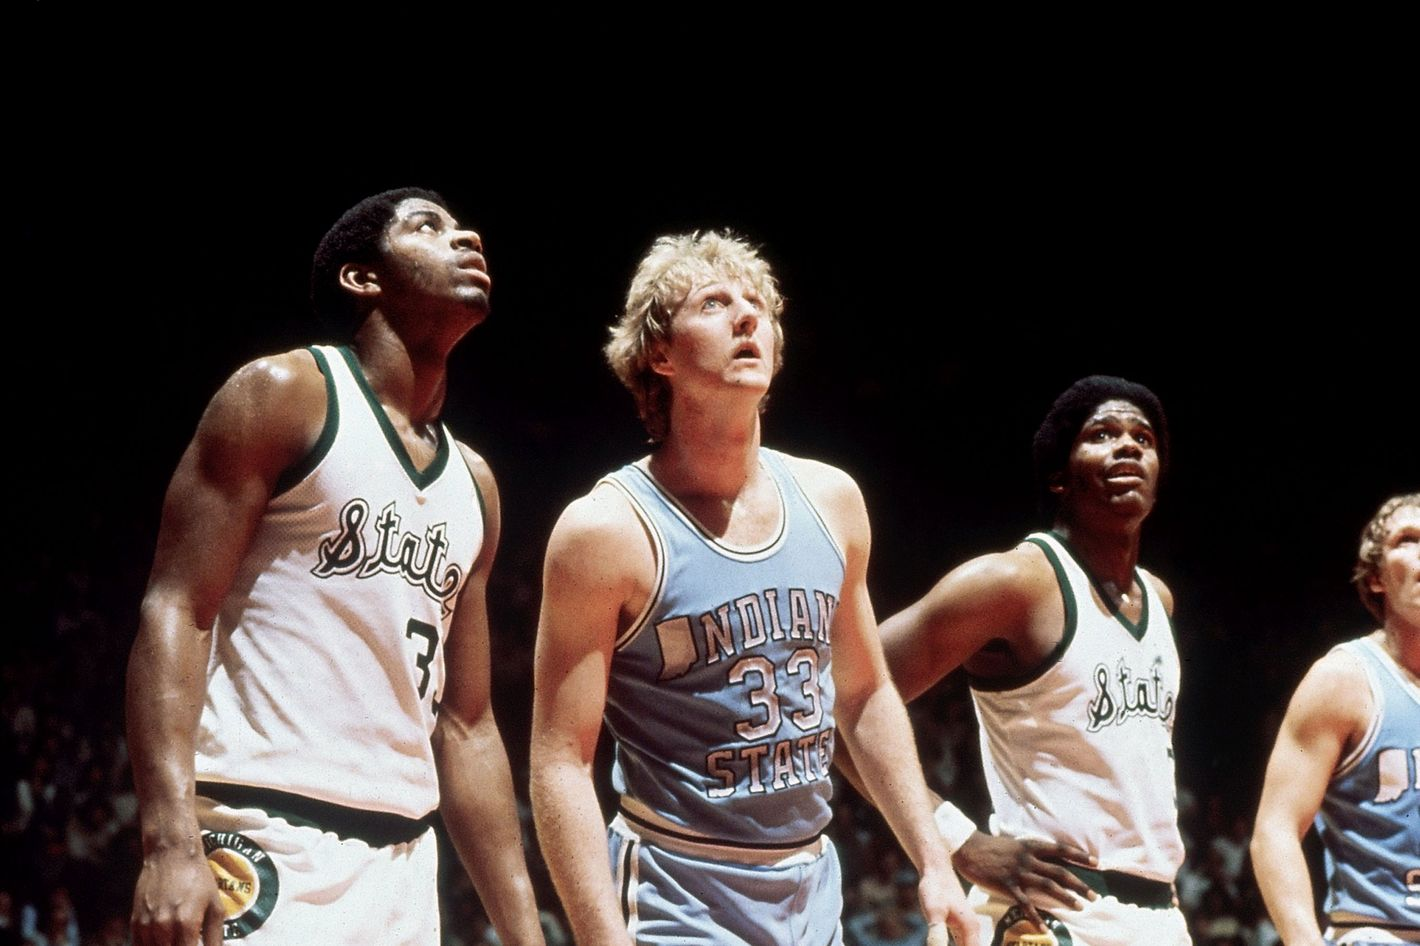 College Basketball: NCAA Final Four: Michigan State Magic Johnson (33) and Indiana State Larry Bird (33) lining up for foul shot during game. Salt Lake City, UT 3/26/1979 CREDIT: James Drake (Photo by James Drake /Sports Illustrated/Getty Images) (Set Number: X23267 )